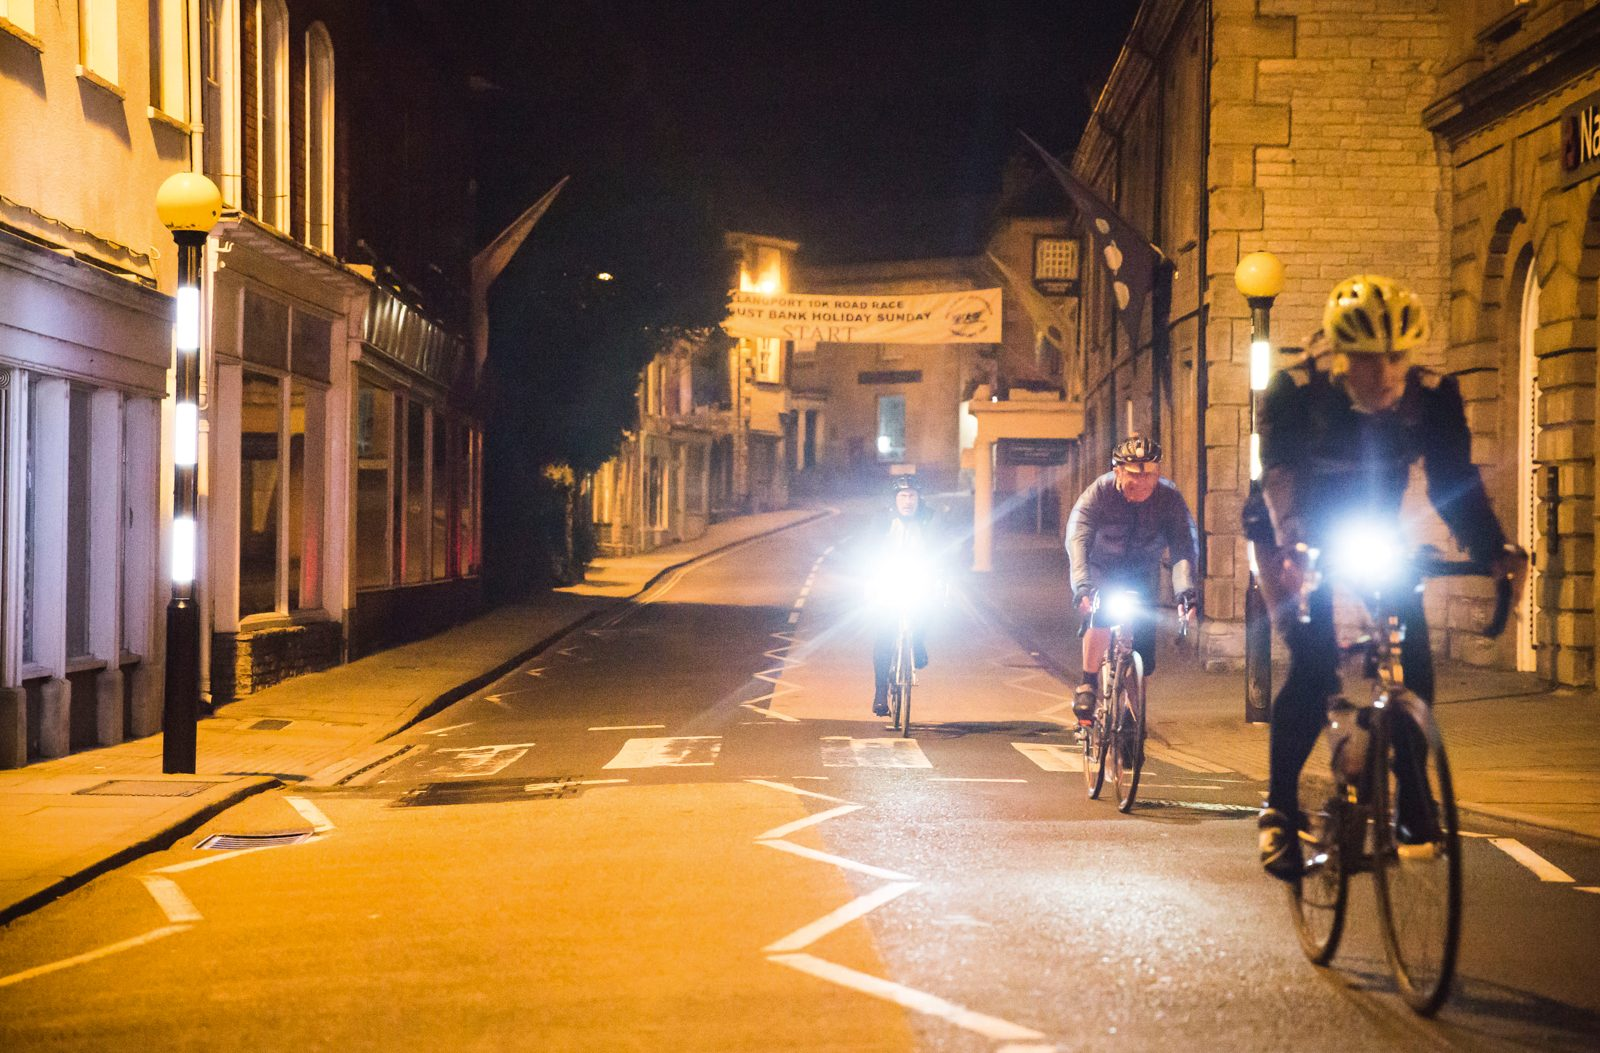 8 tips for road riding in the dark | How to ride confidently at night